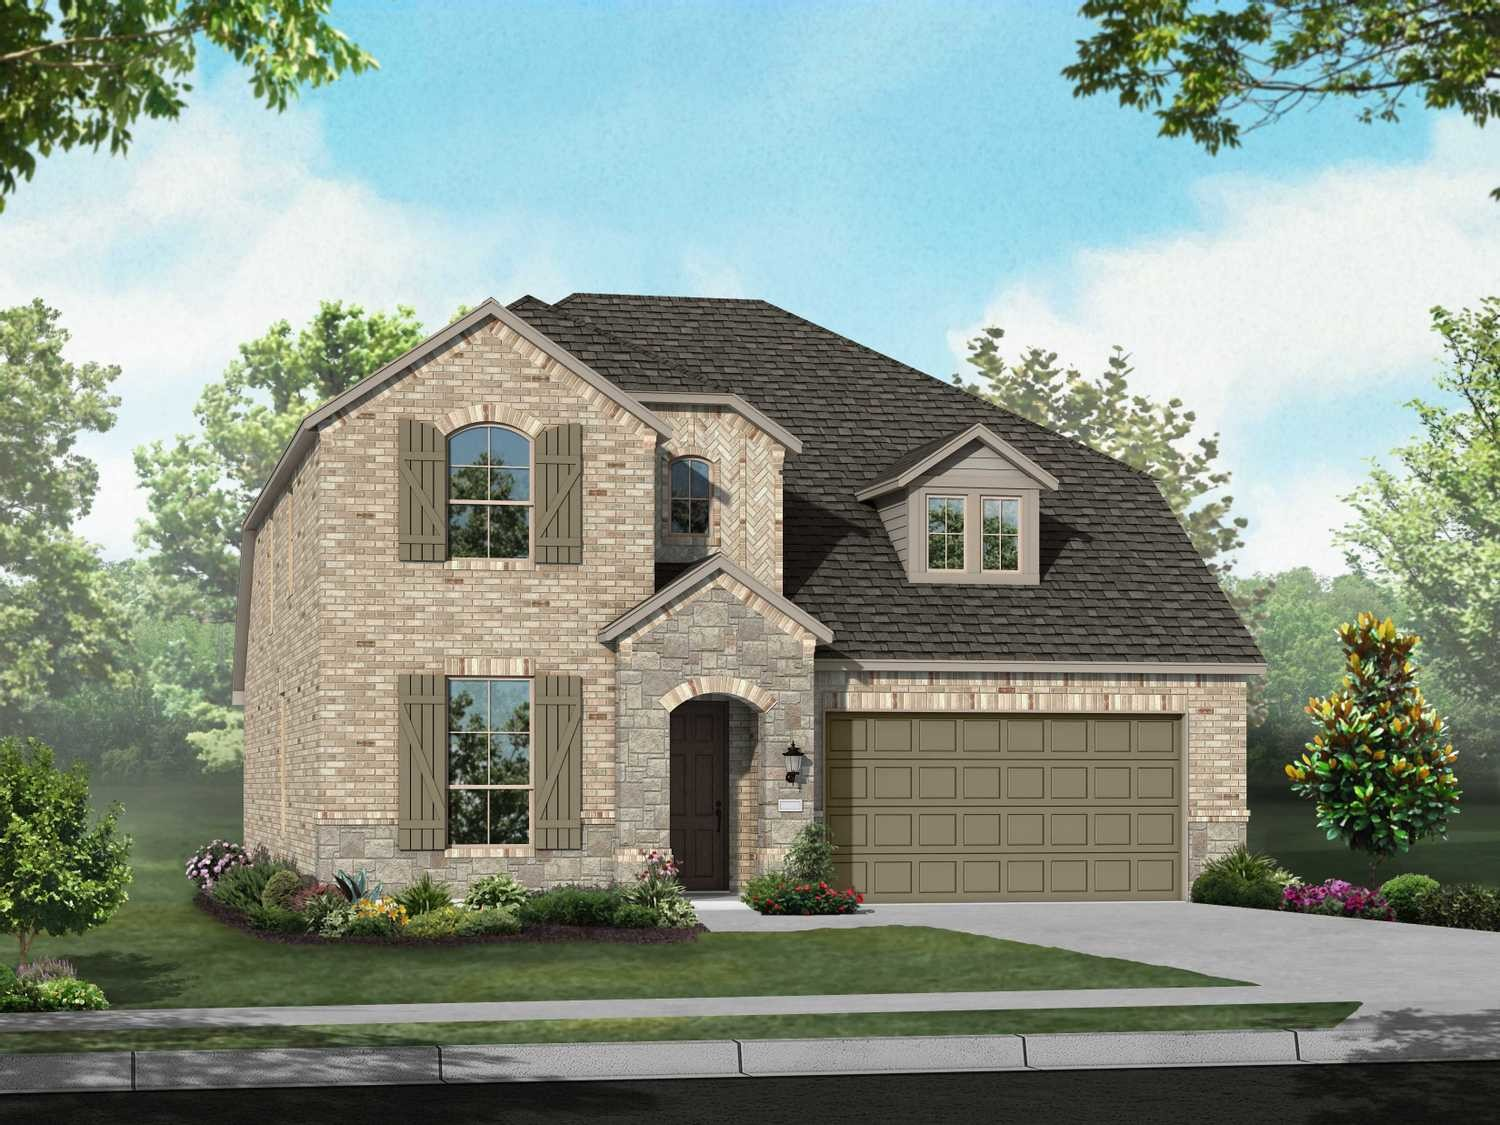 Move In Ready New Home In Waterscape Community